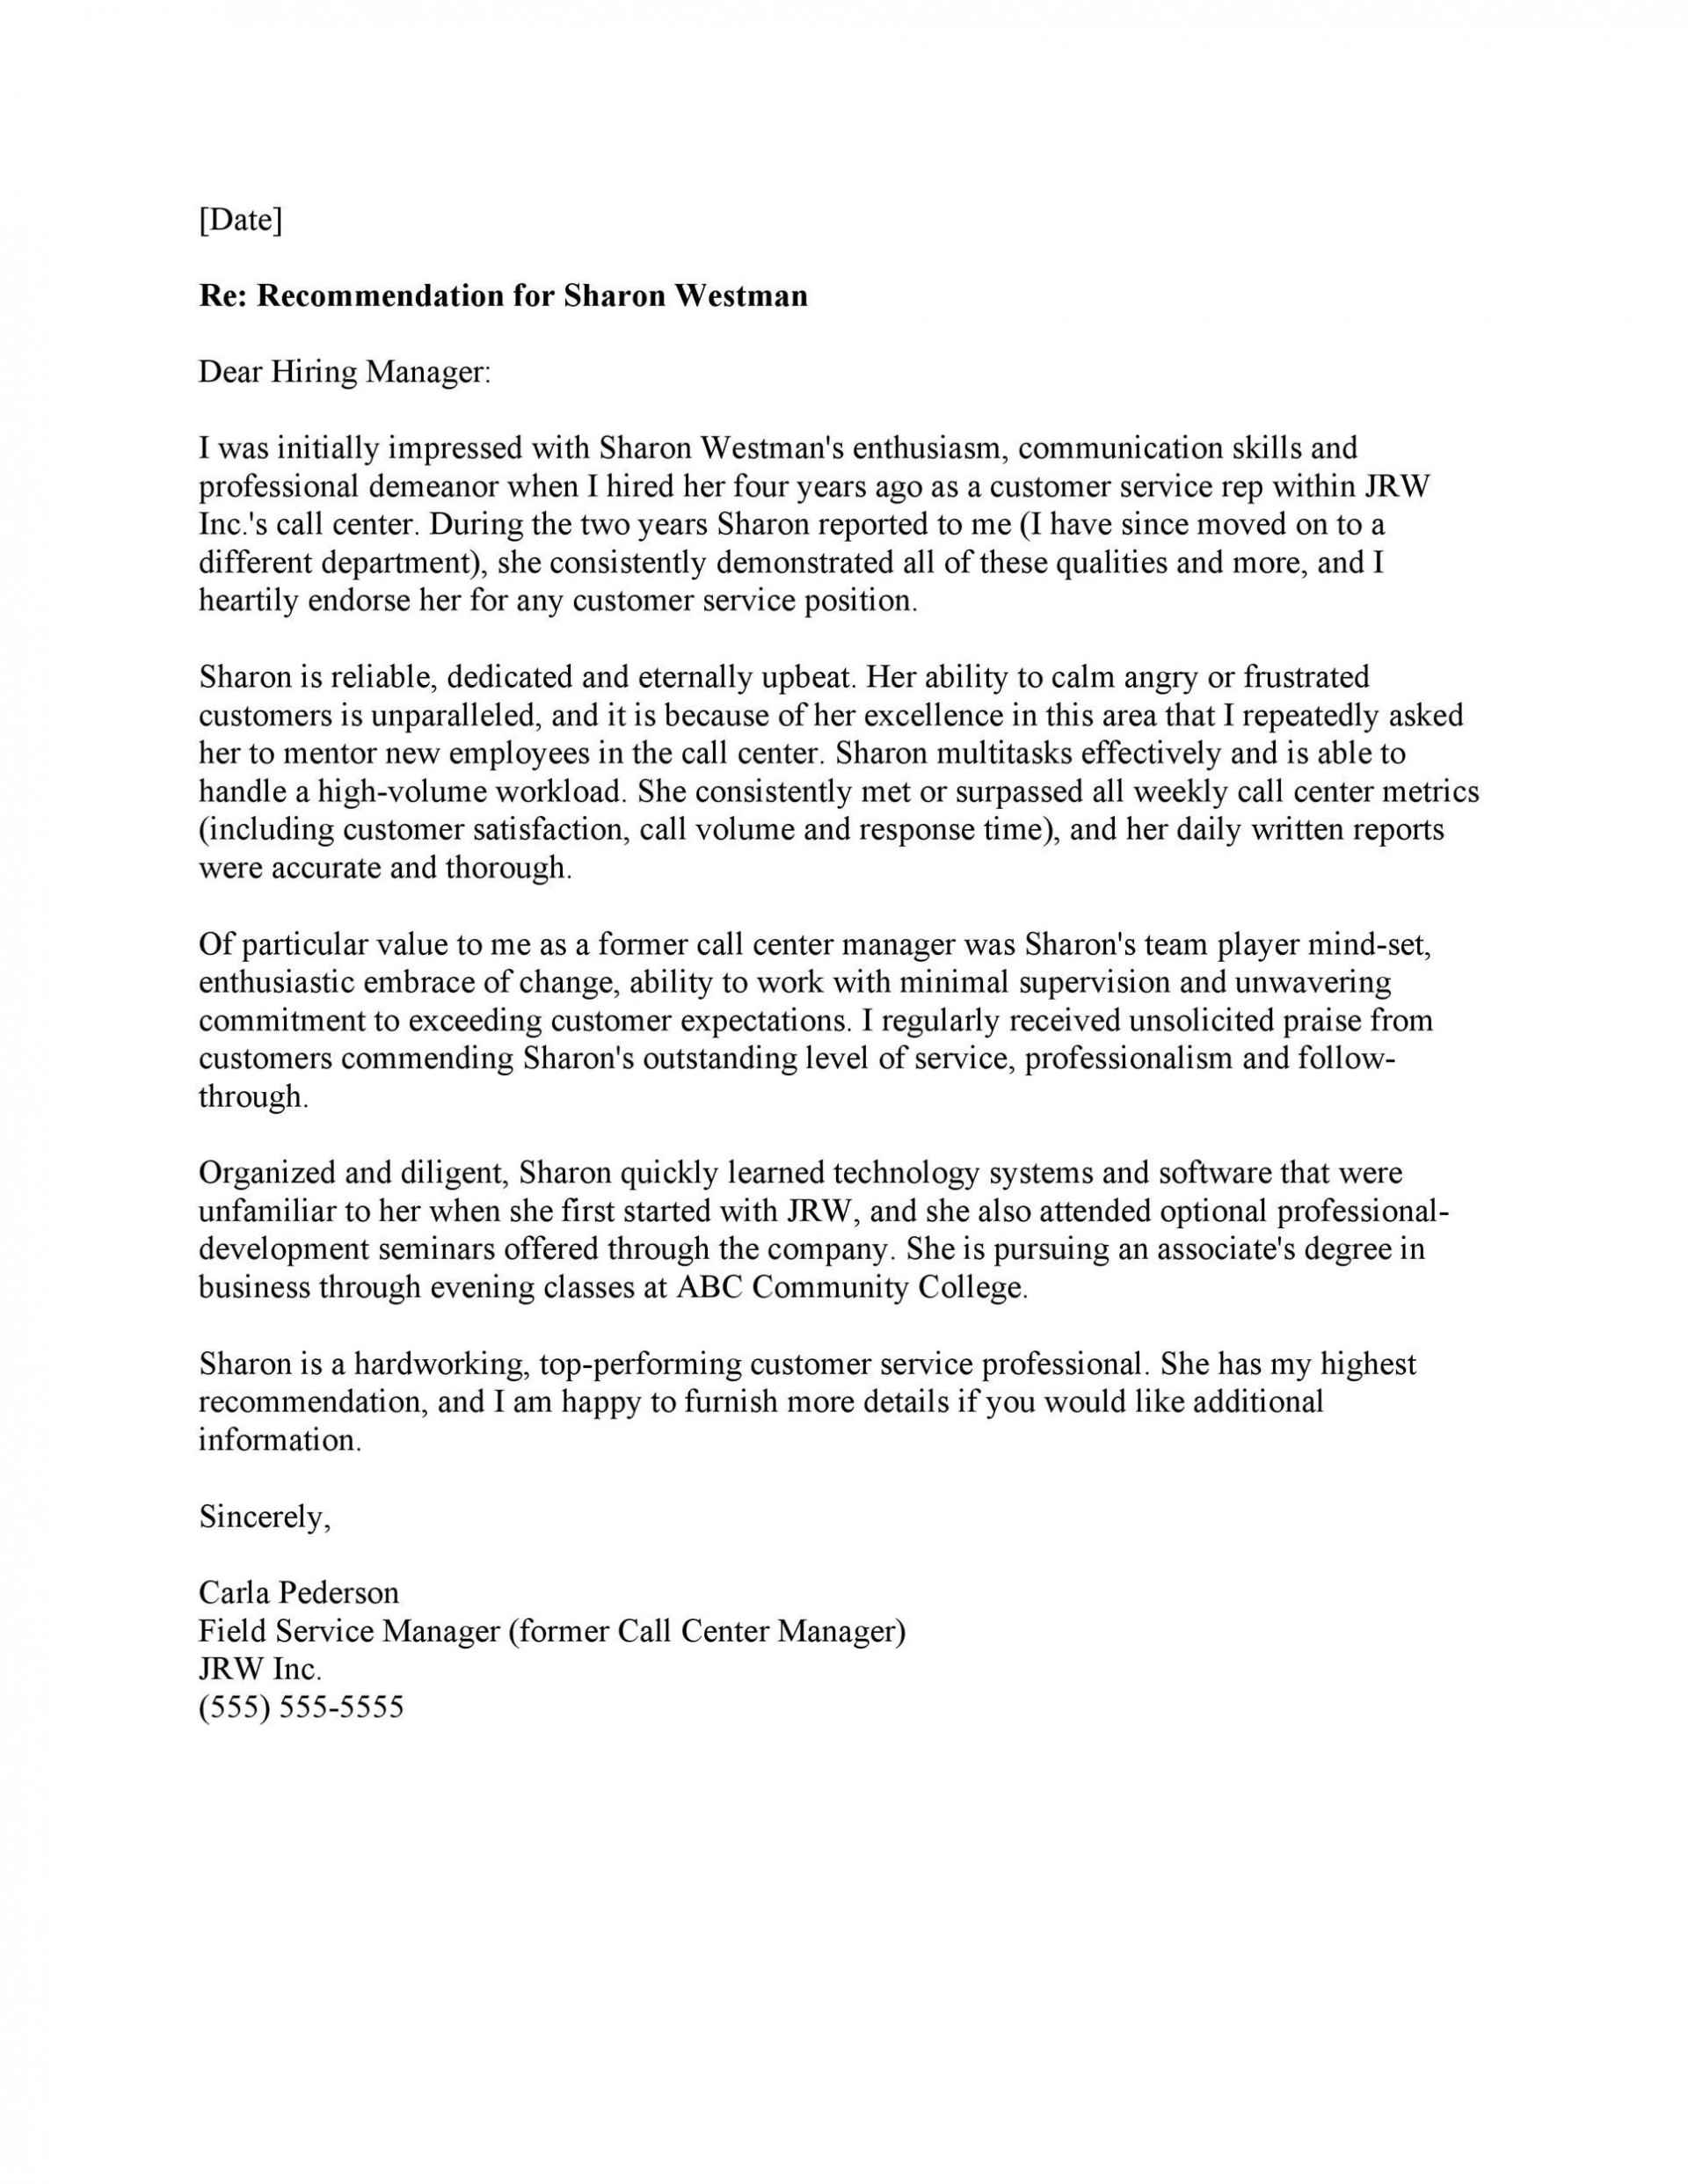 008 Awful Letter Of Recommendation Template High Resolution  Word Sample For College Admission Student Doc1920